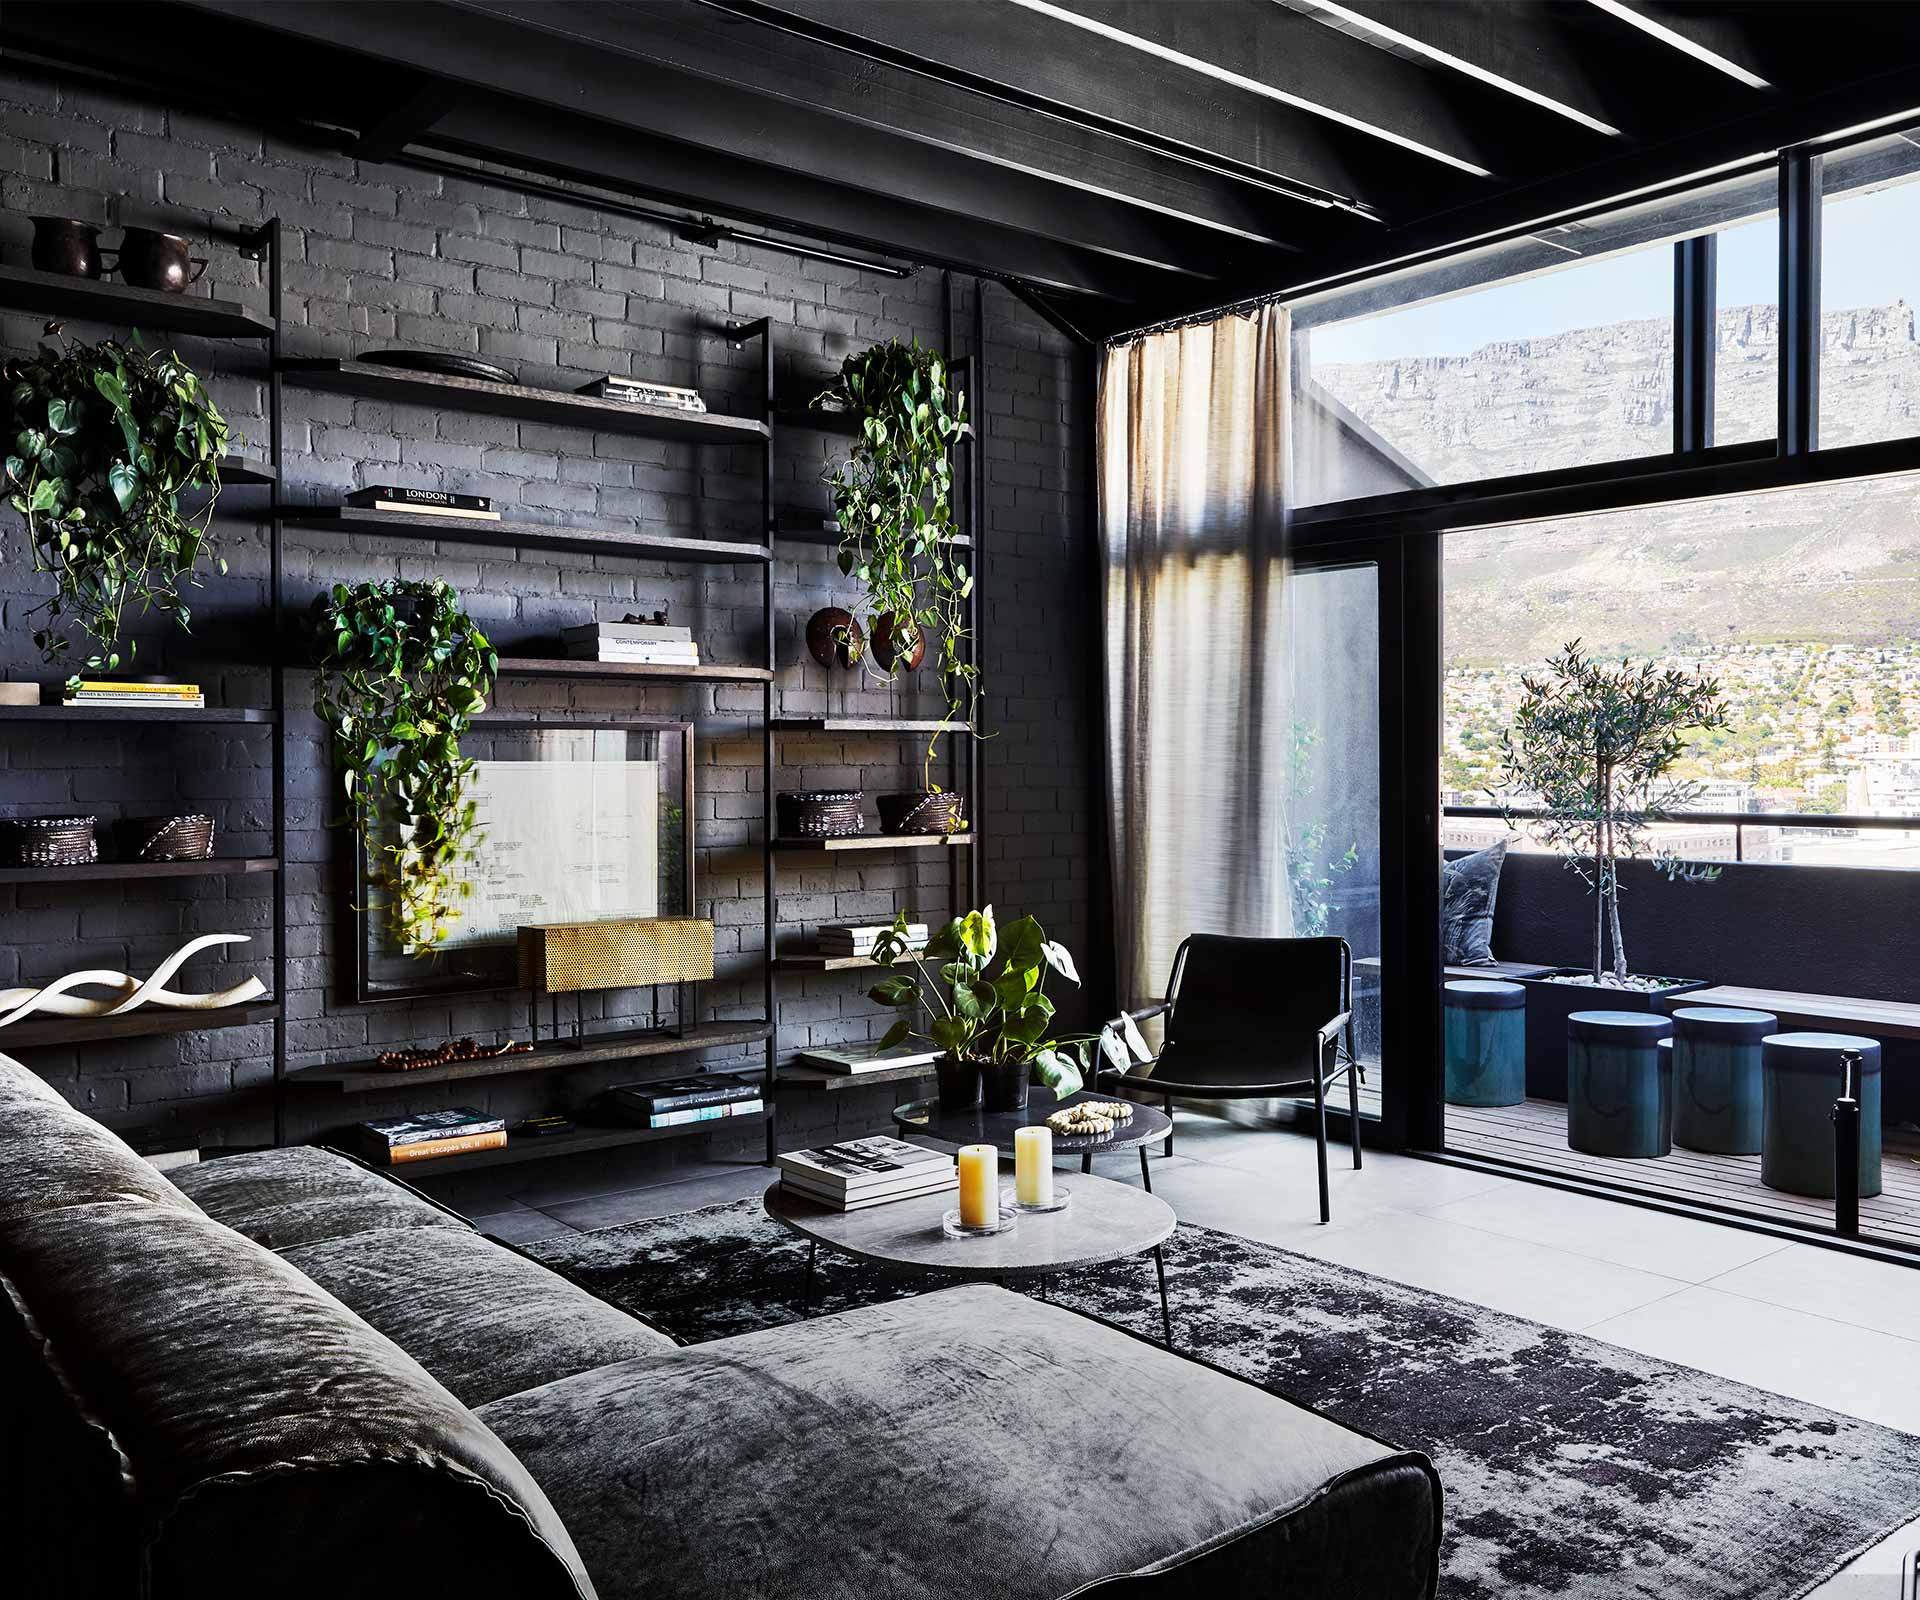 An industrial-style apartment with a monochrome palette